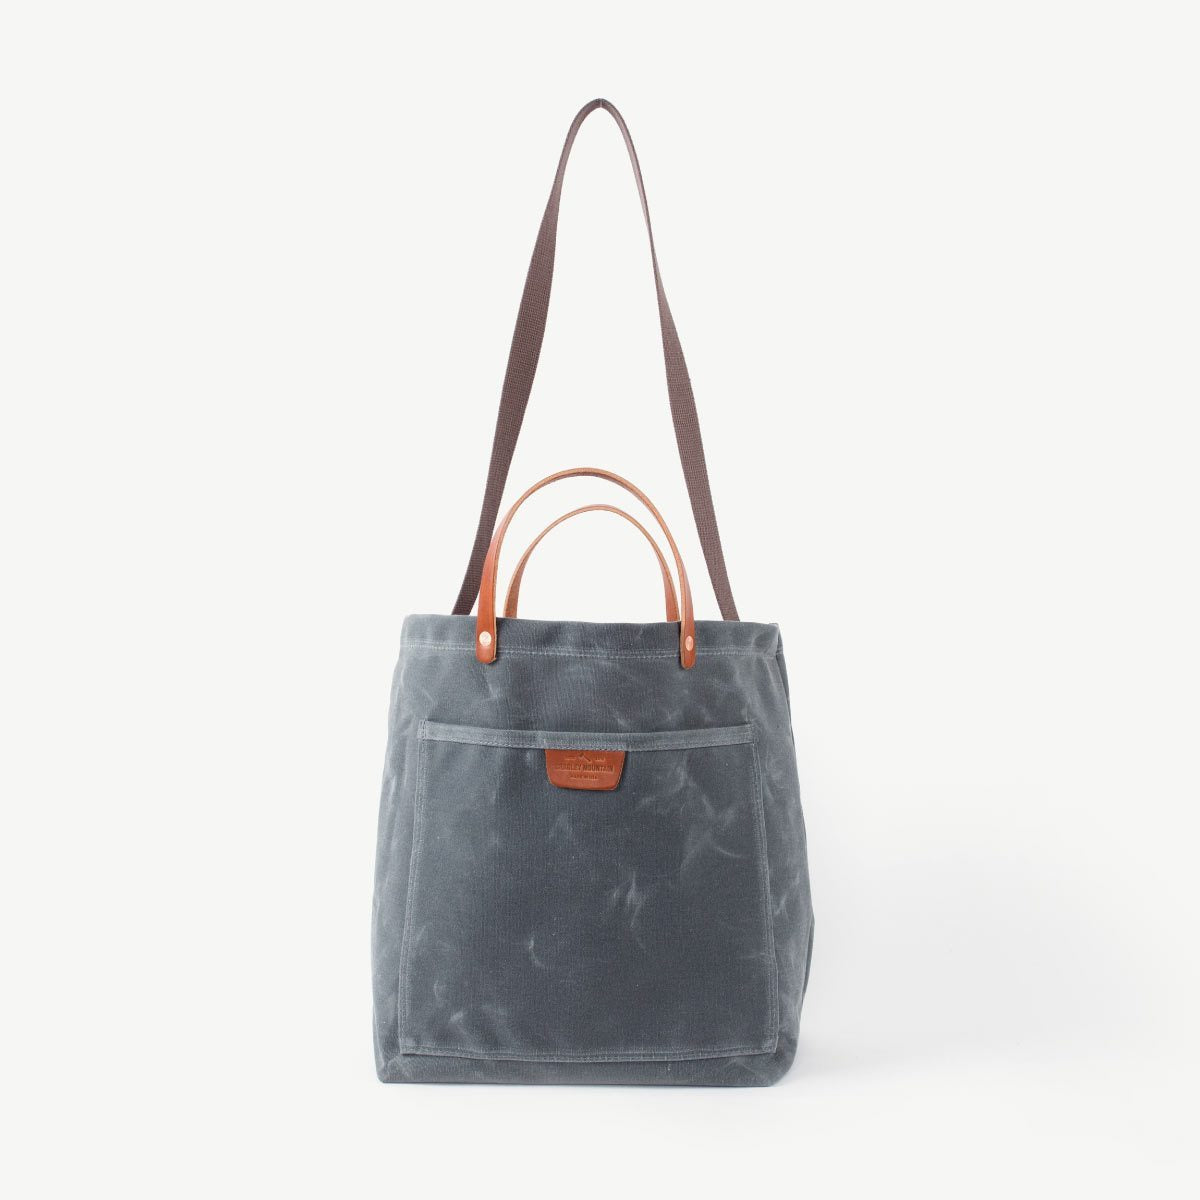 Bradley Mountain Cole Tote - Charcoal